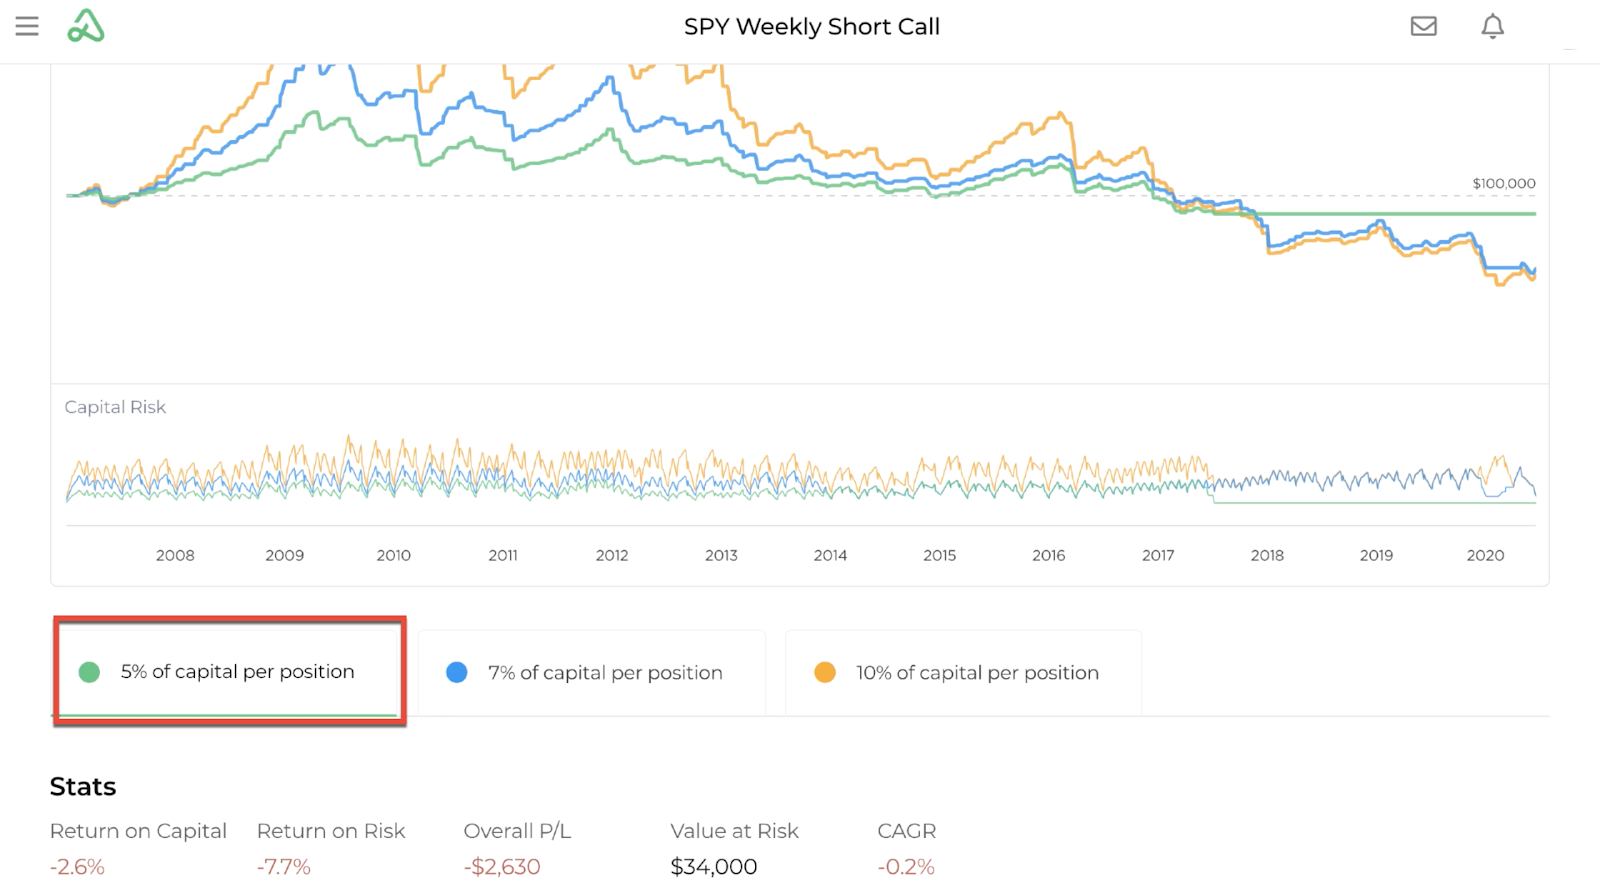 Screenshot highlighting a backtest's results summary by capital allocation of 5% of capital per position